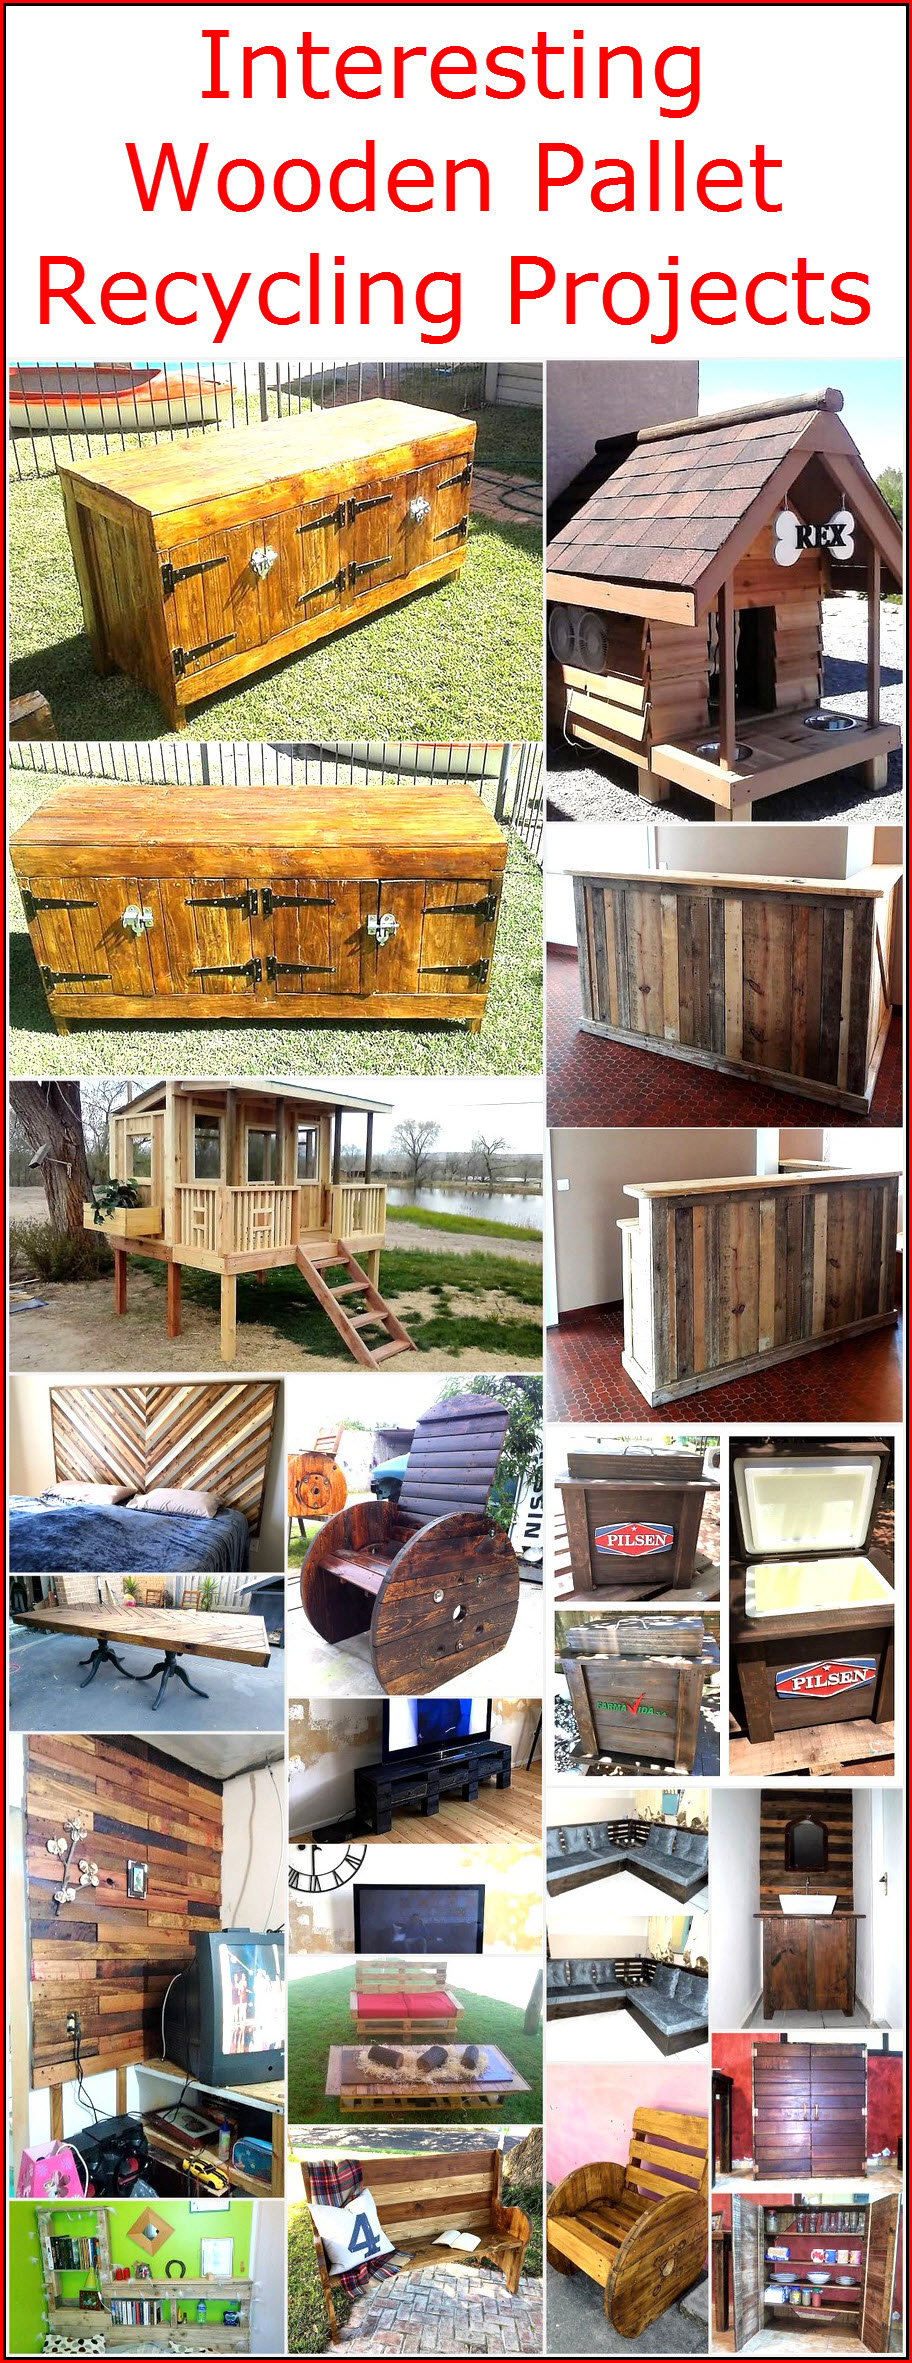 interesting-wooden-pallet-recycling-projects